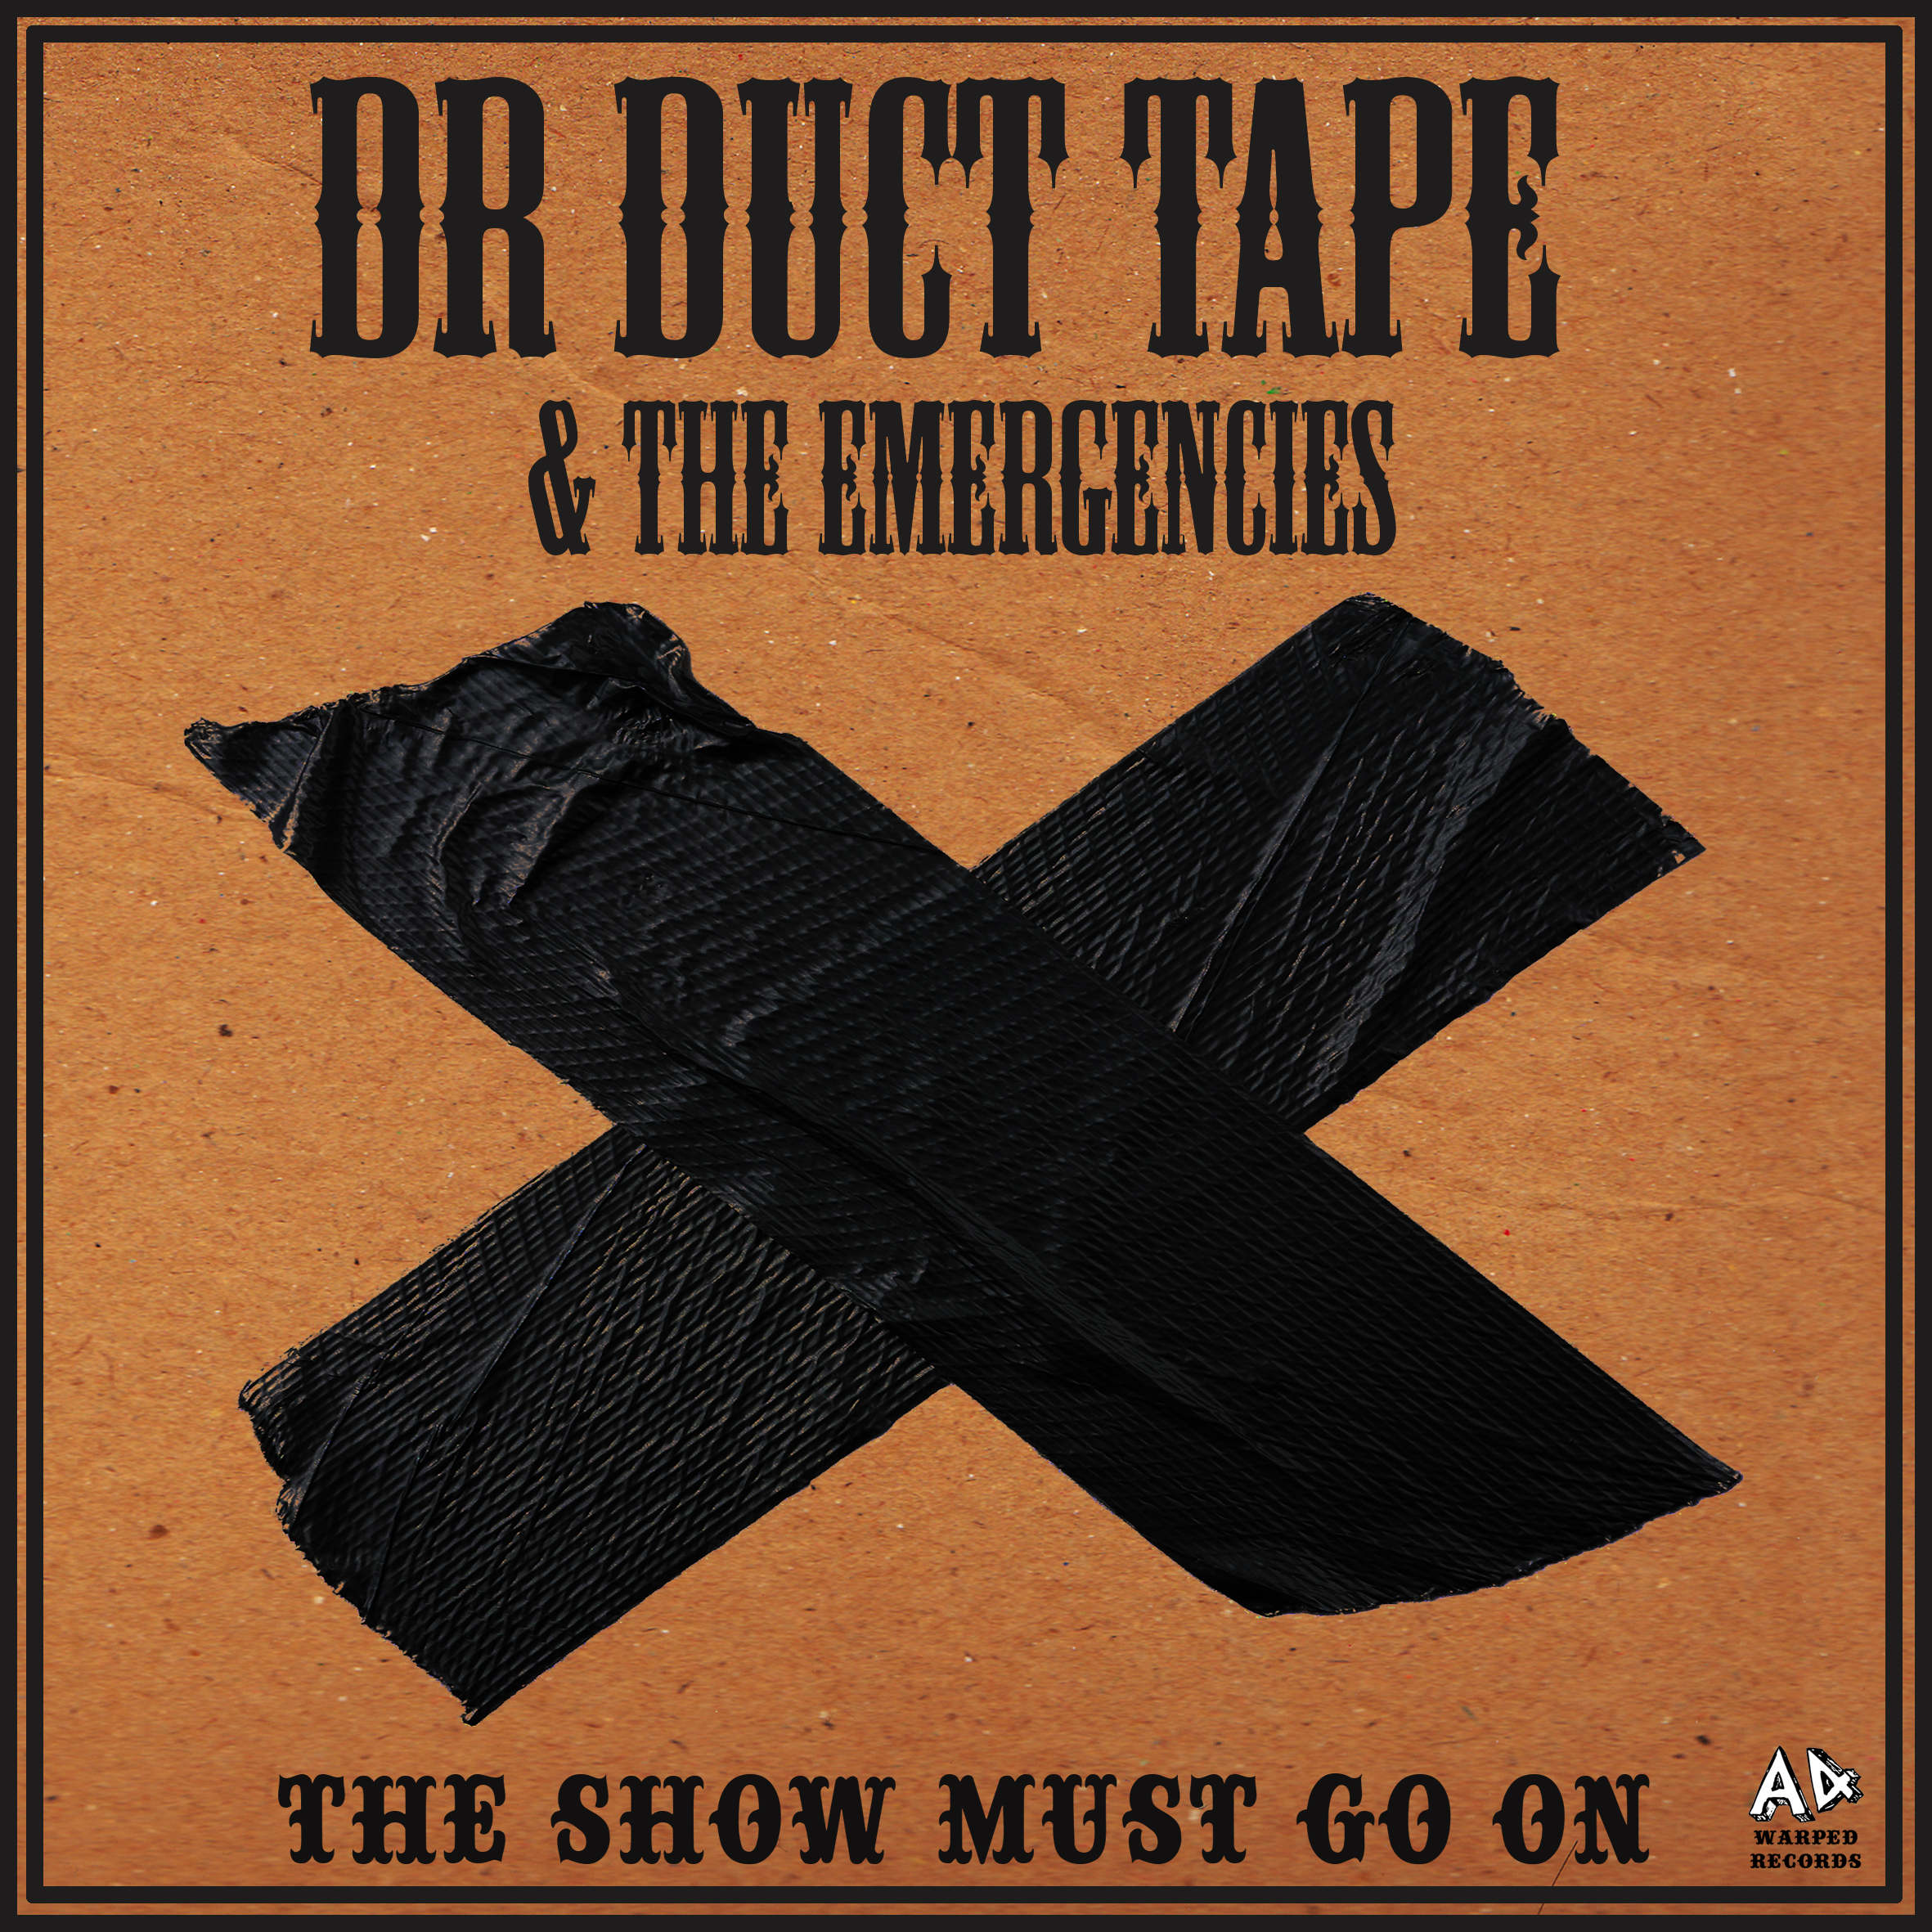 dr duct tape n the emergencies